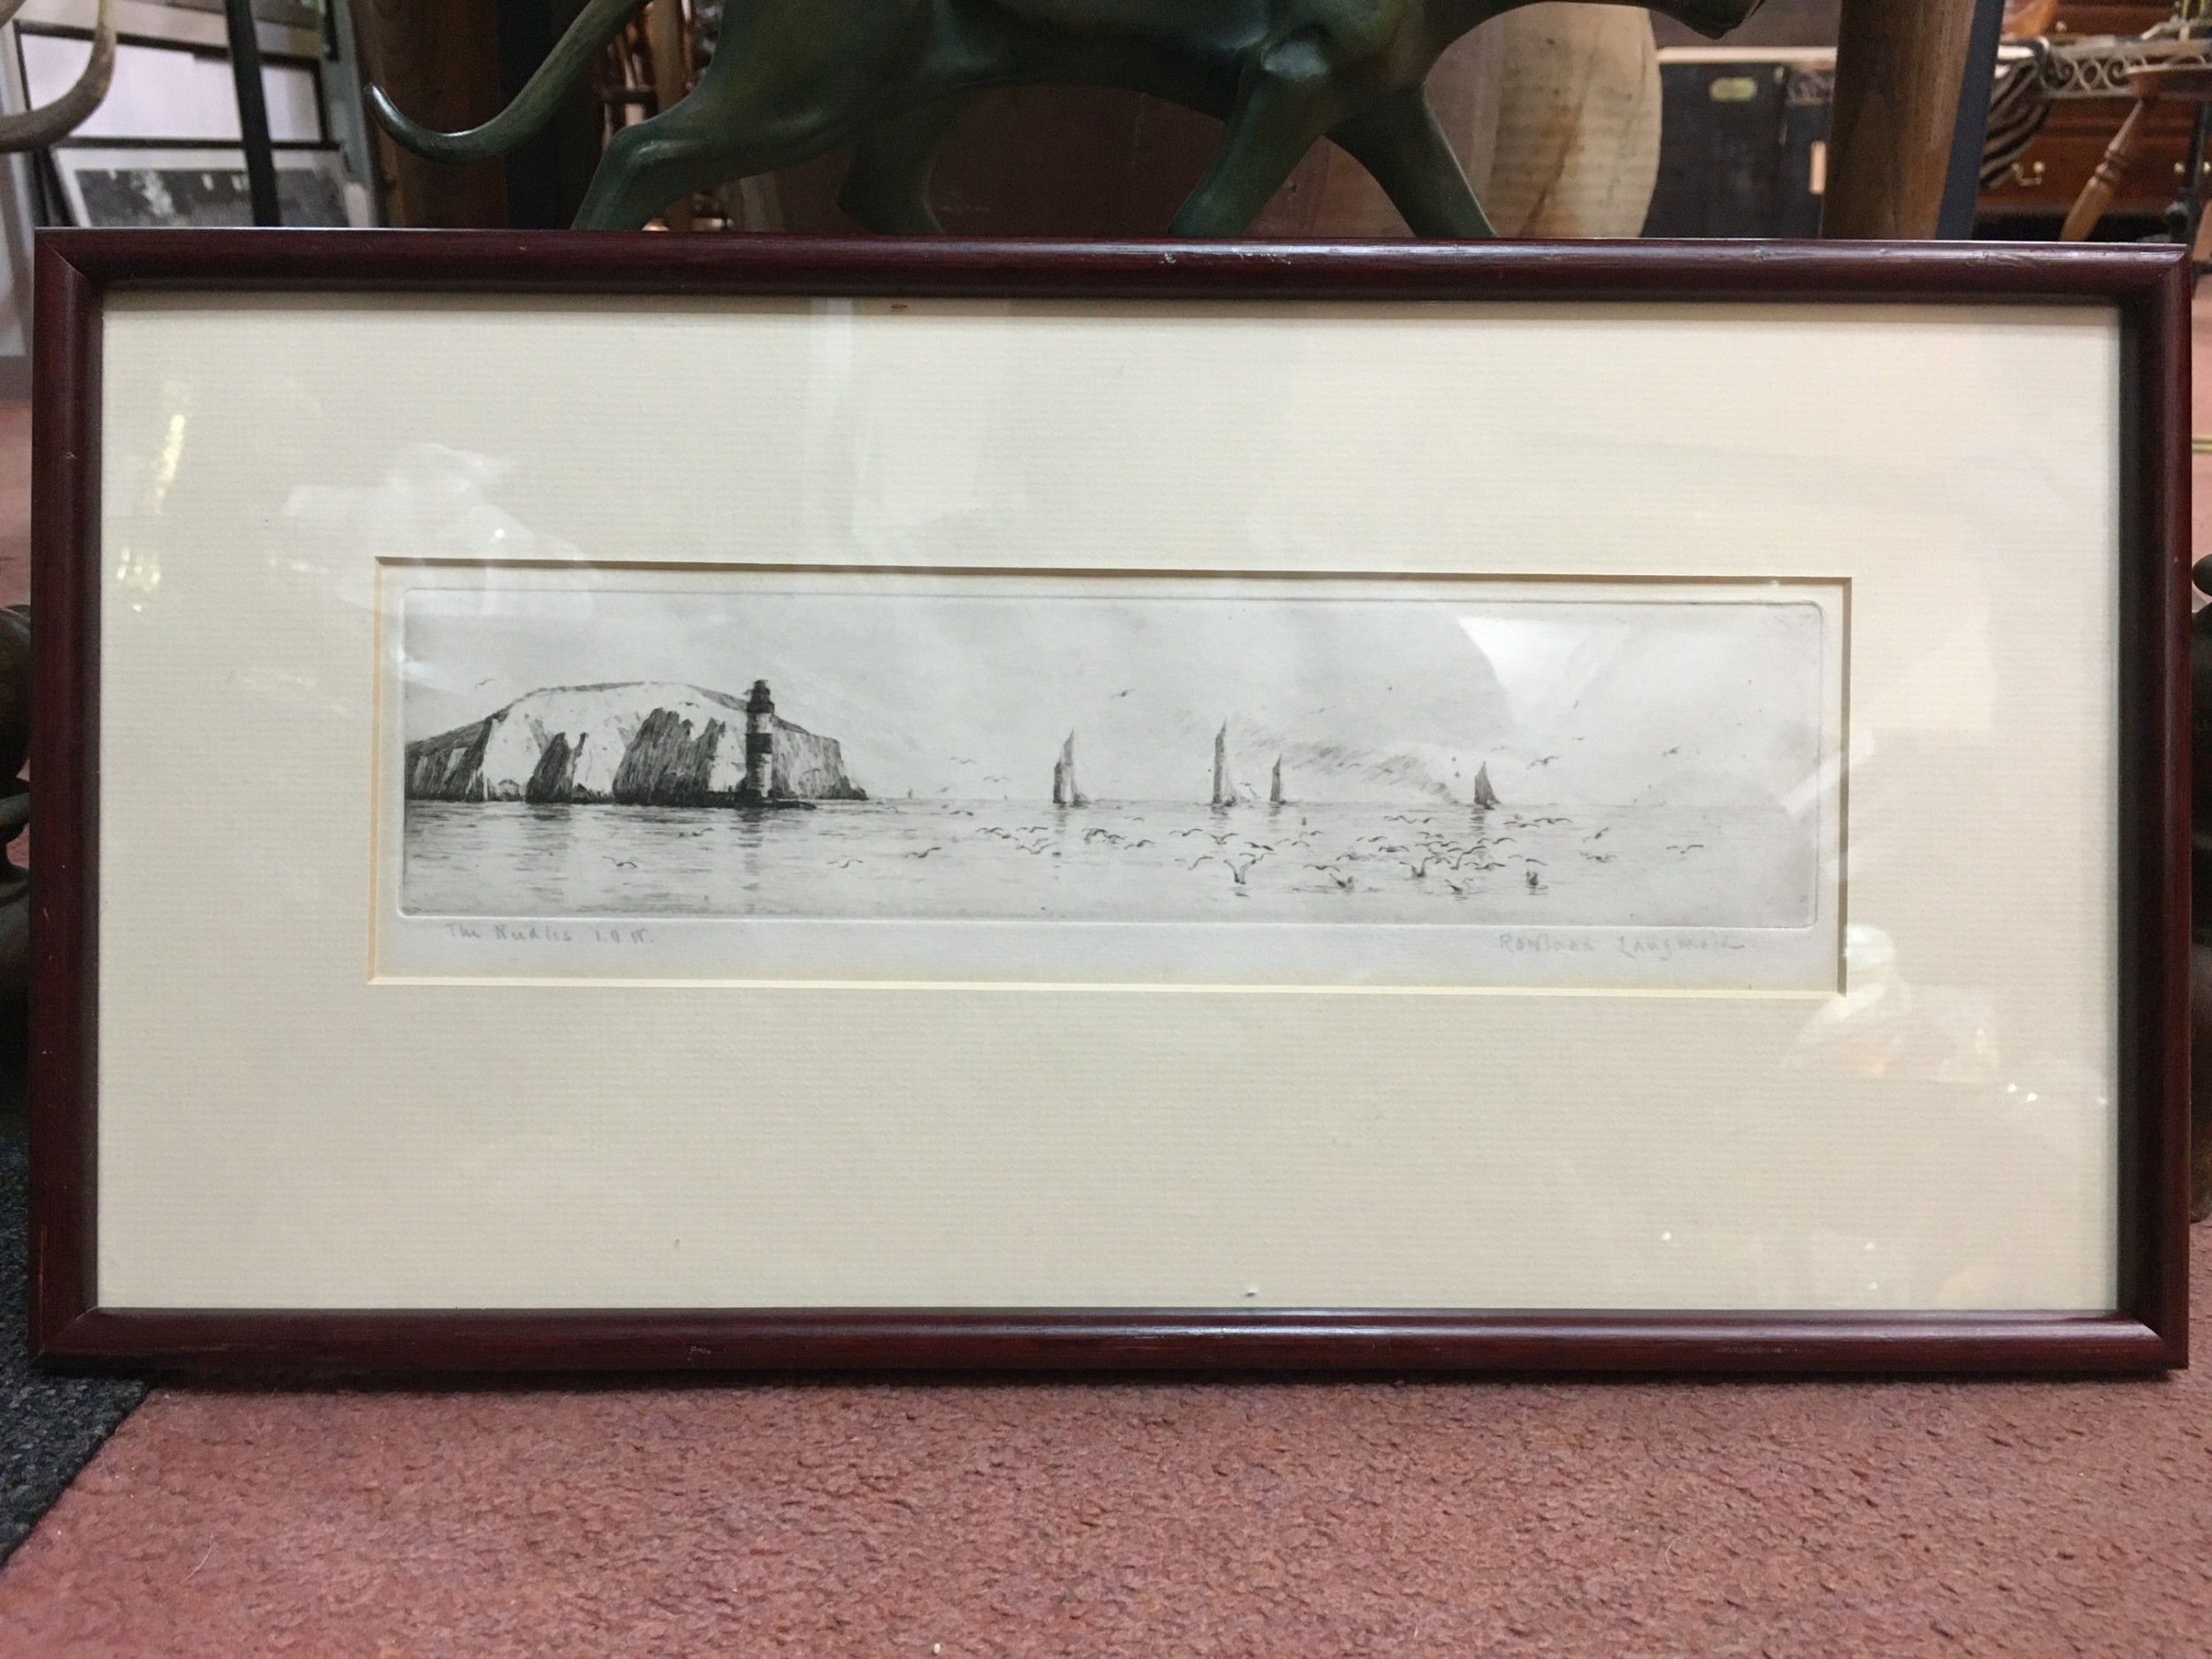 rowland langmaid the needles isle of wight drypoint etching limited edition print 100